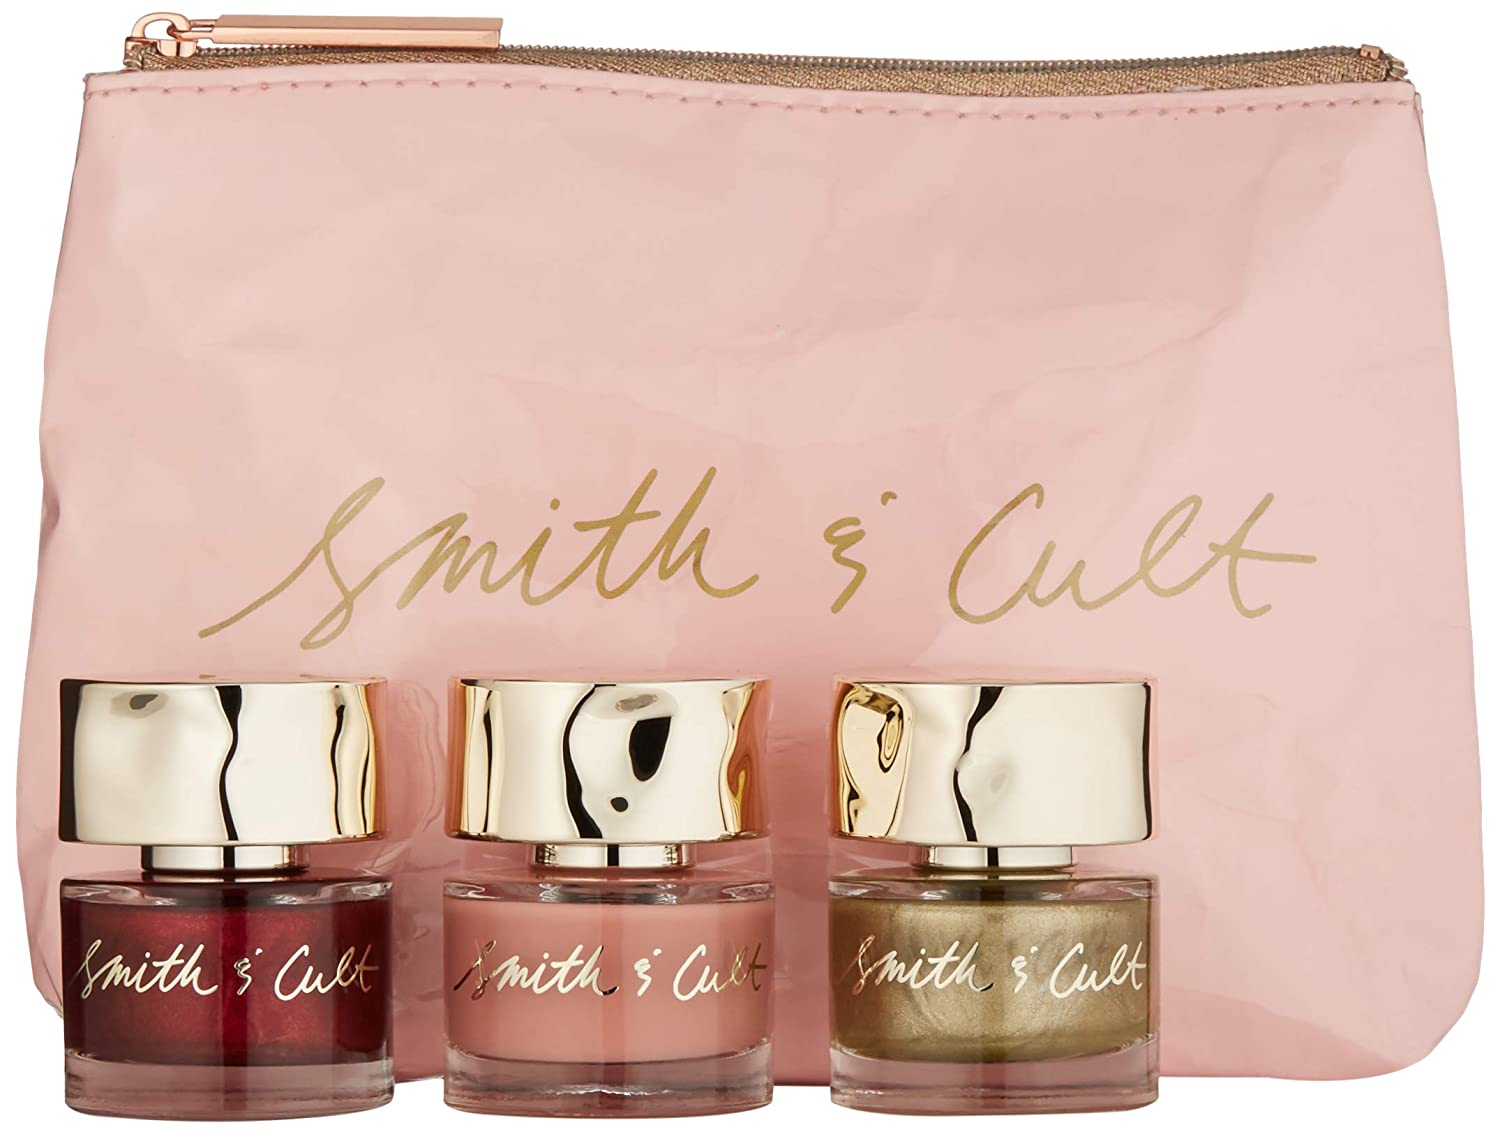 Smith & Cult Nail Lacquer Holiday Gift Set. Best nail gifts and nail gift sets for beauty lovers. Best nail colors for fall and Christmas to gift to a beauty lover. Christmas gifts for teenage girl in 2020. Birthday gifts for teen girls and women who love beauty. Holiday gifts 2020